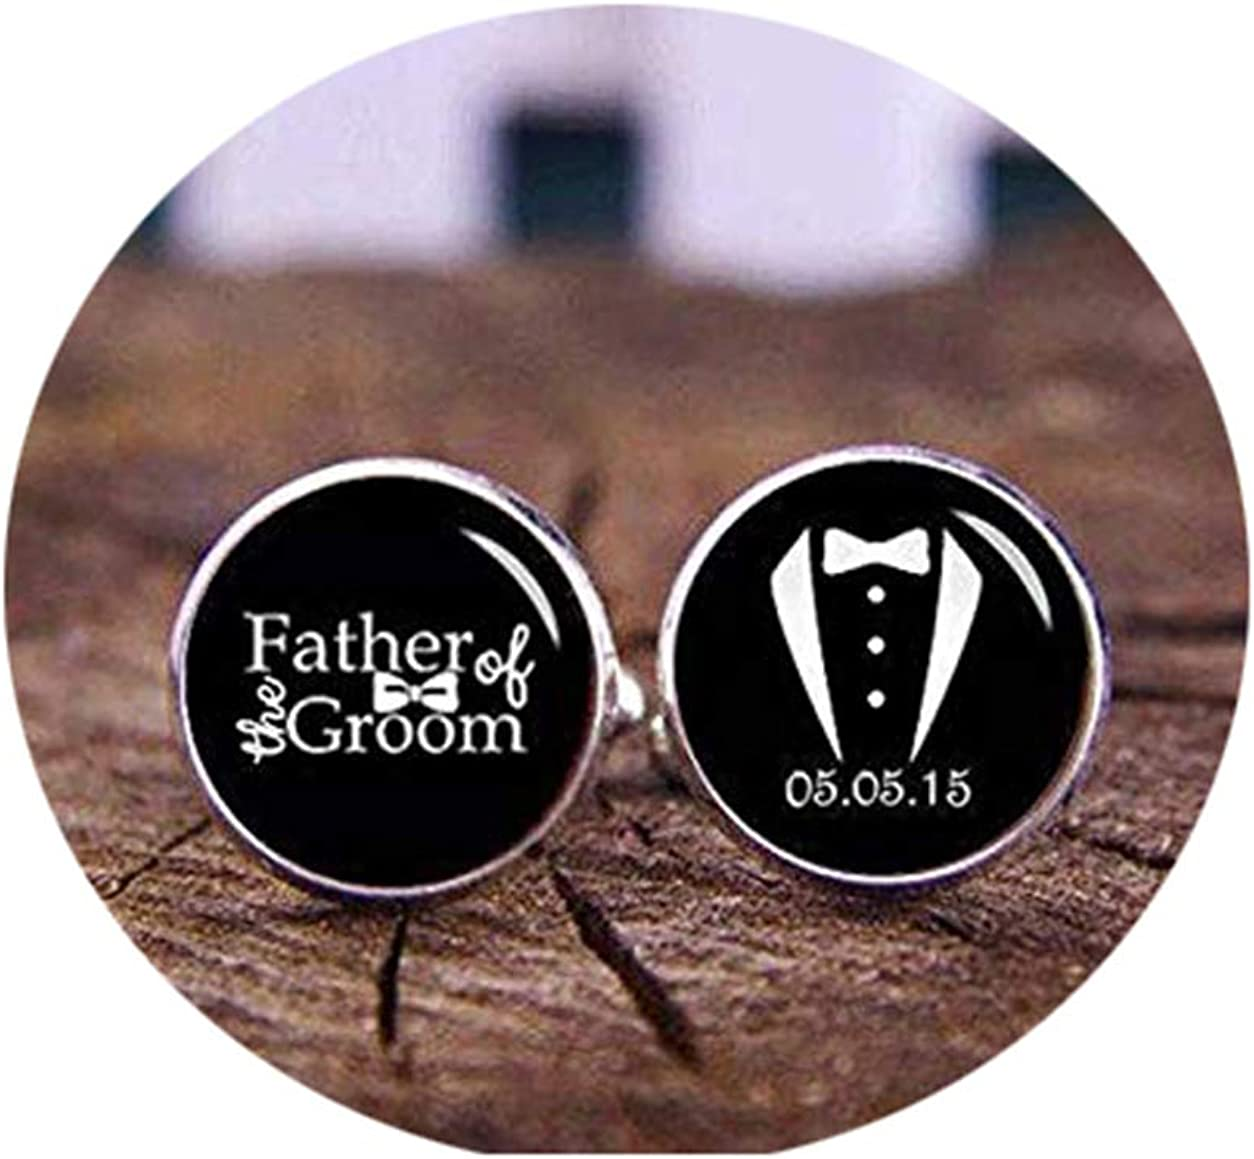 Death Devil Custom Cuff Links,Father of The Groom, Suit Up, Custom Wedding Cufflinks, Personalized Wedding Cuff Links, Groom Cuff Links, Custom Date, Initial, Name, Photo,Gift of Love